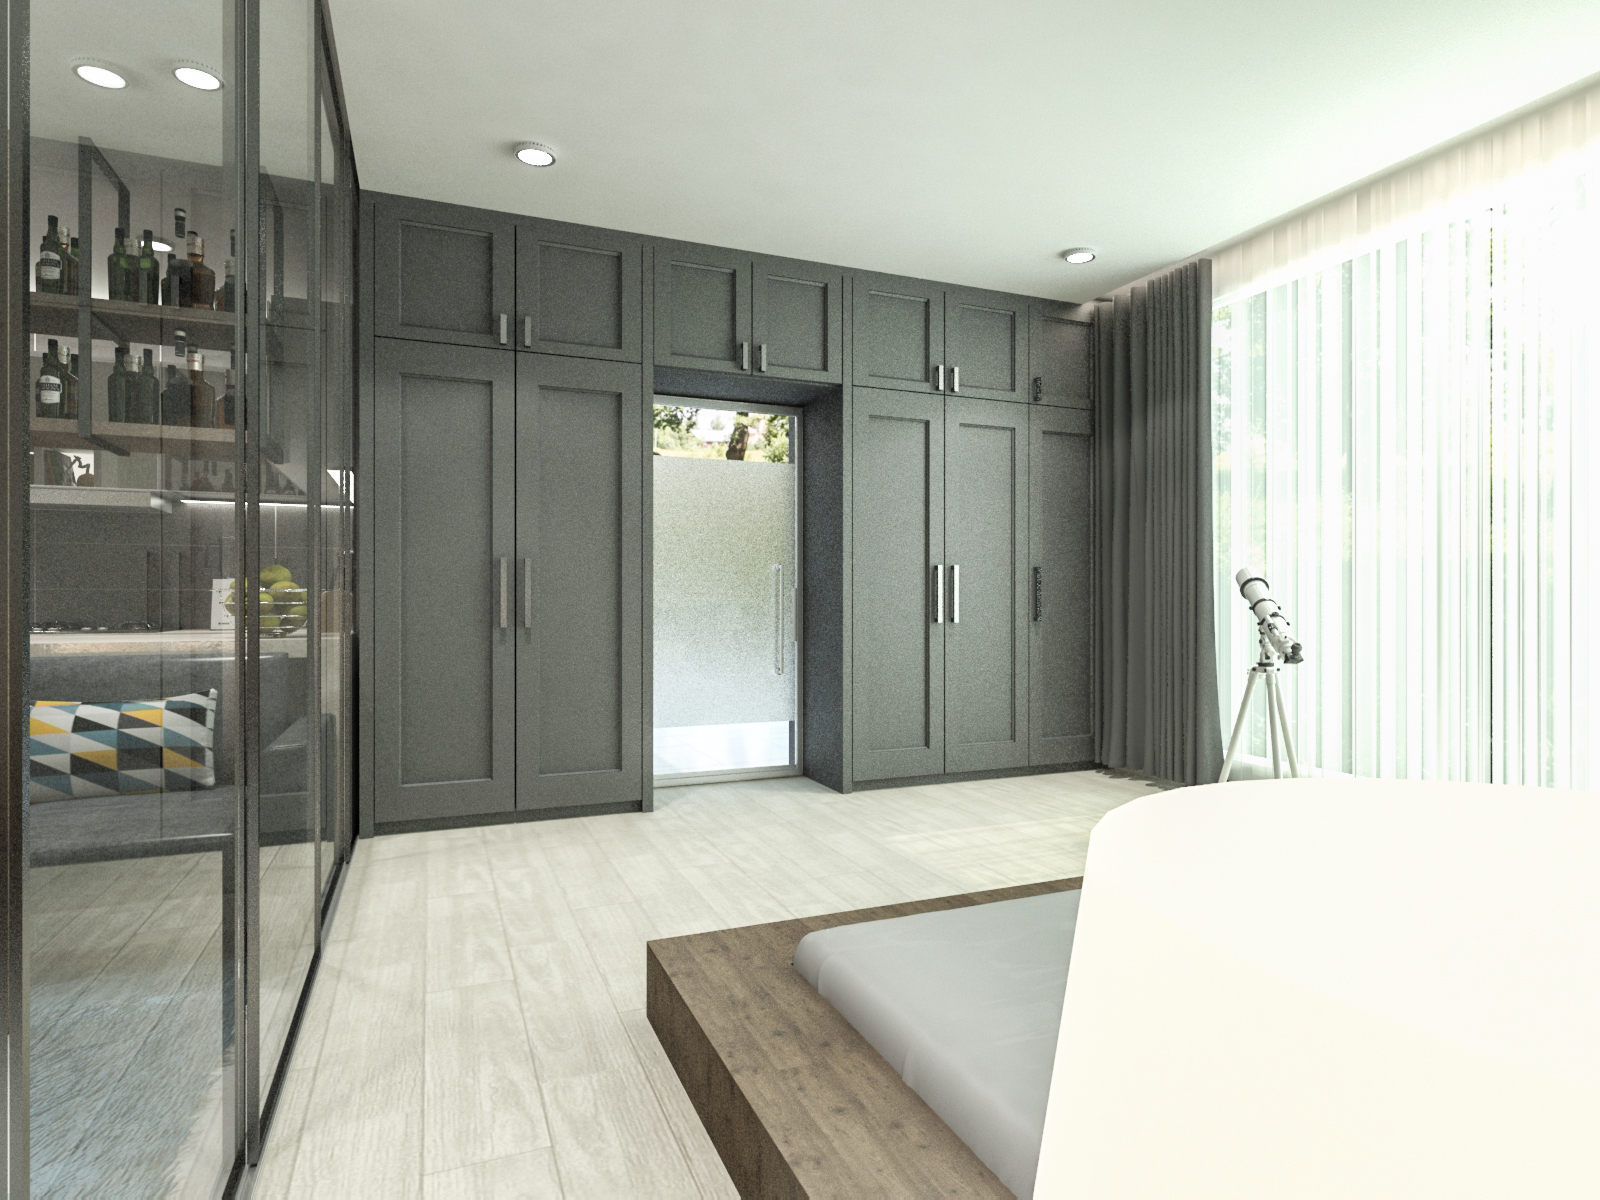 15 questions you should know when selecting a home. Black Bedroom Furniture Sets. Home Design Ideas